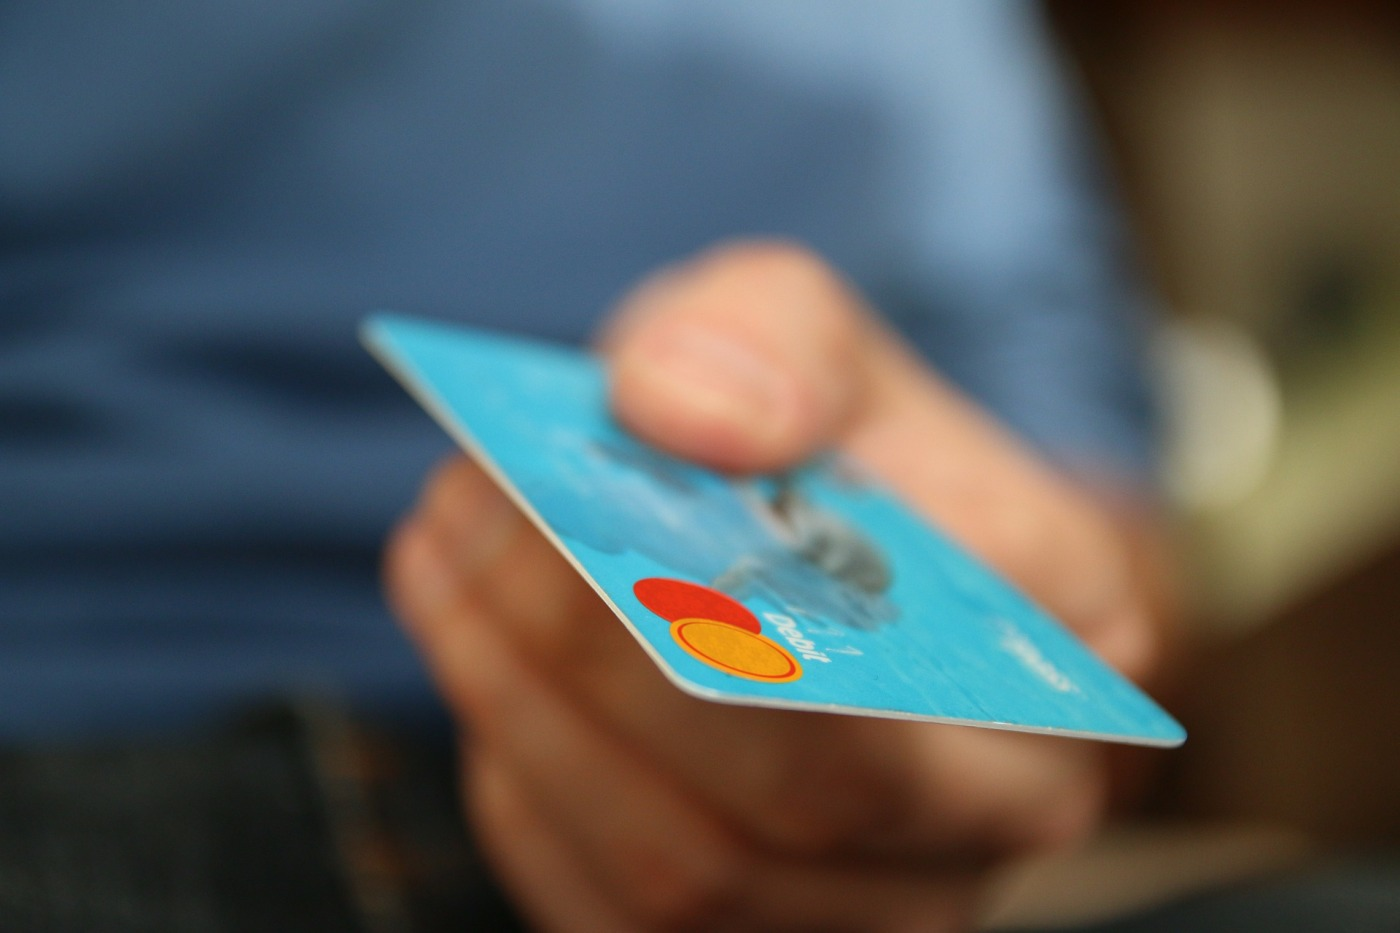 merchant charge credit card